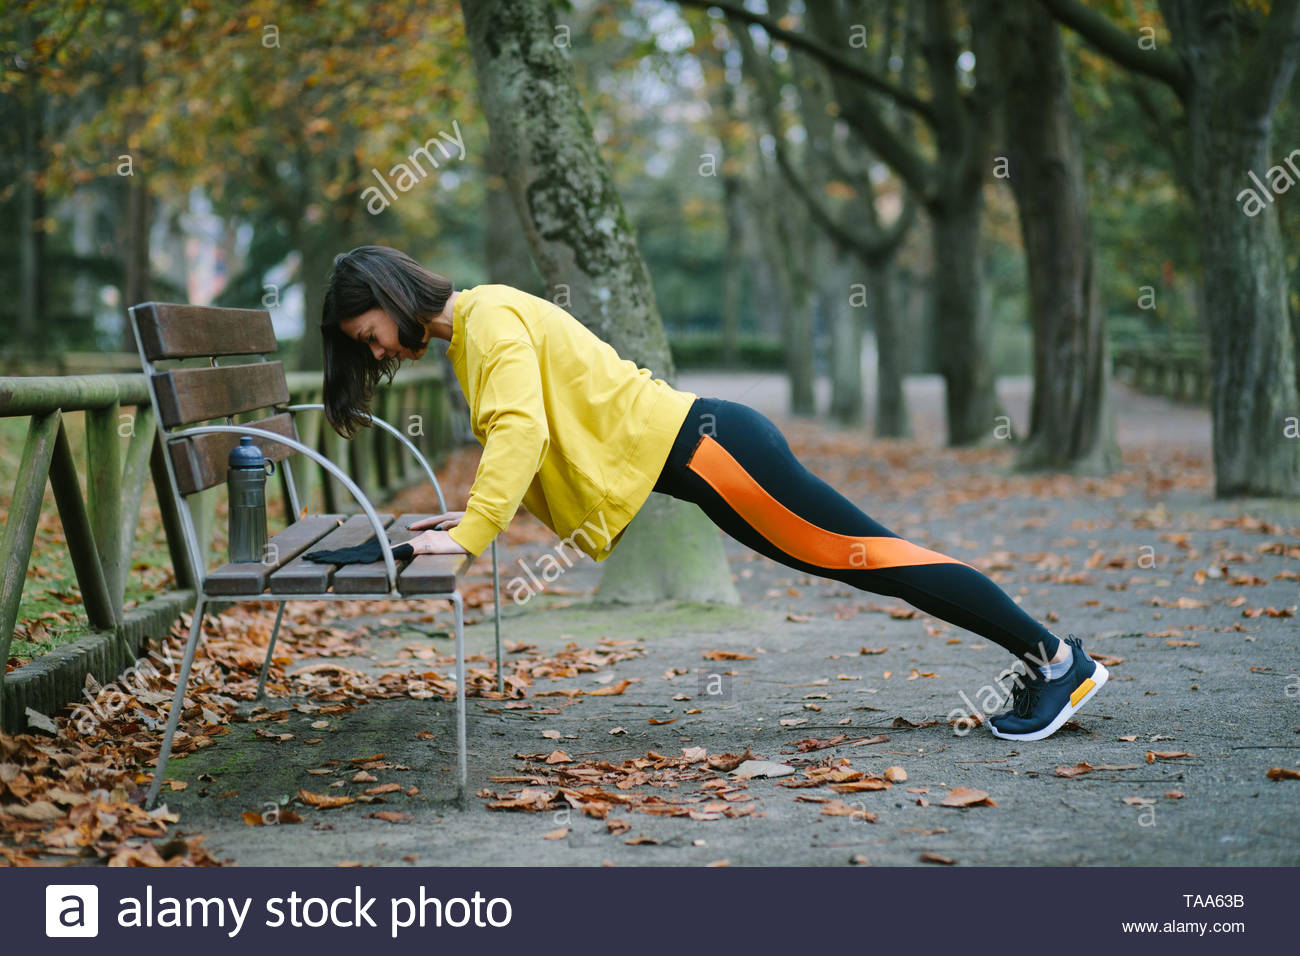 Female athlete doing bench push ups for strength workout at city park in autumn. Sporty woman training outdoor. - Stock Image